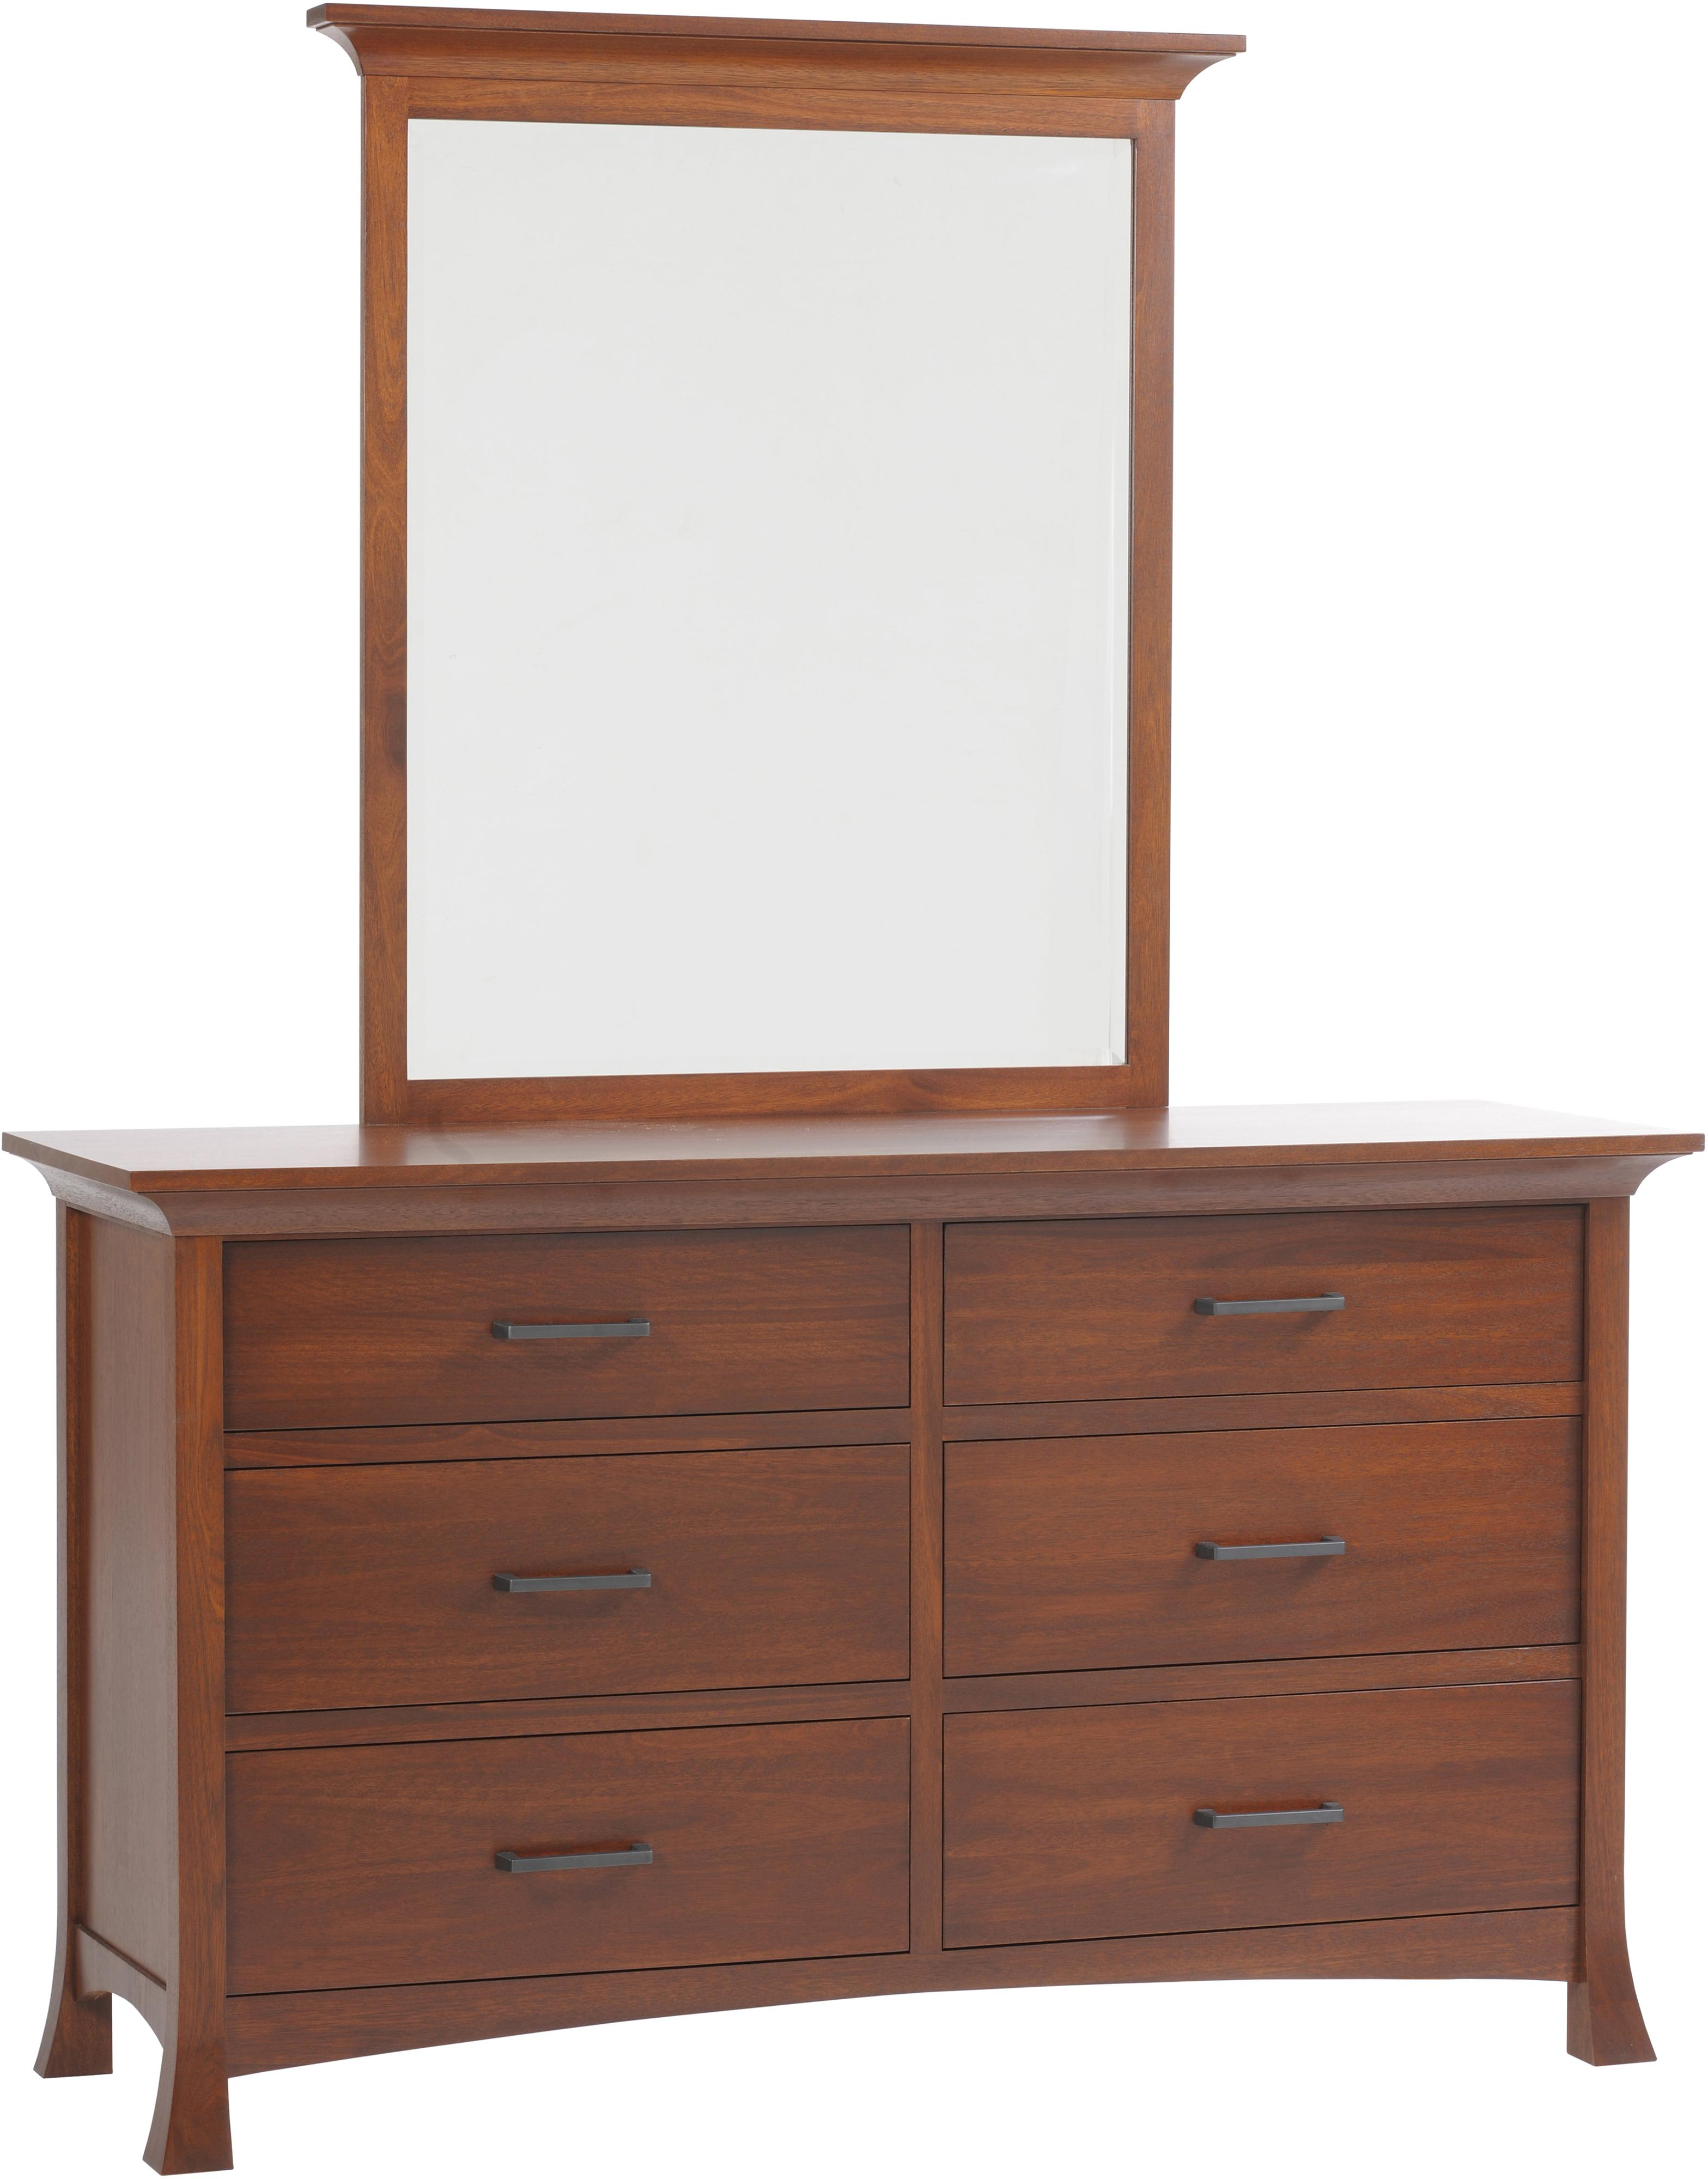 Oasis Low Dresser and Mirror by Millcraft at Saugerties Furniture Mart